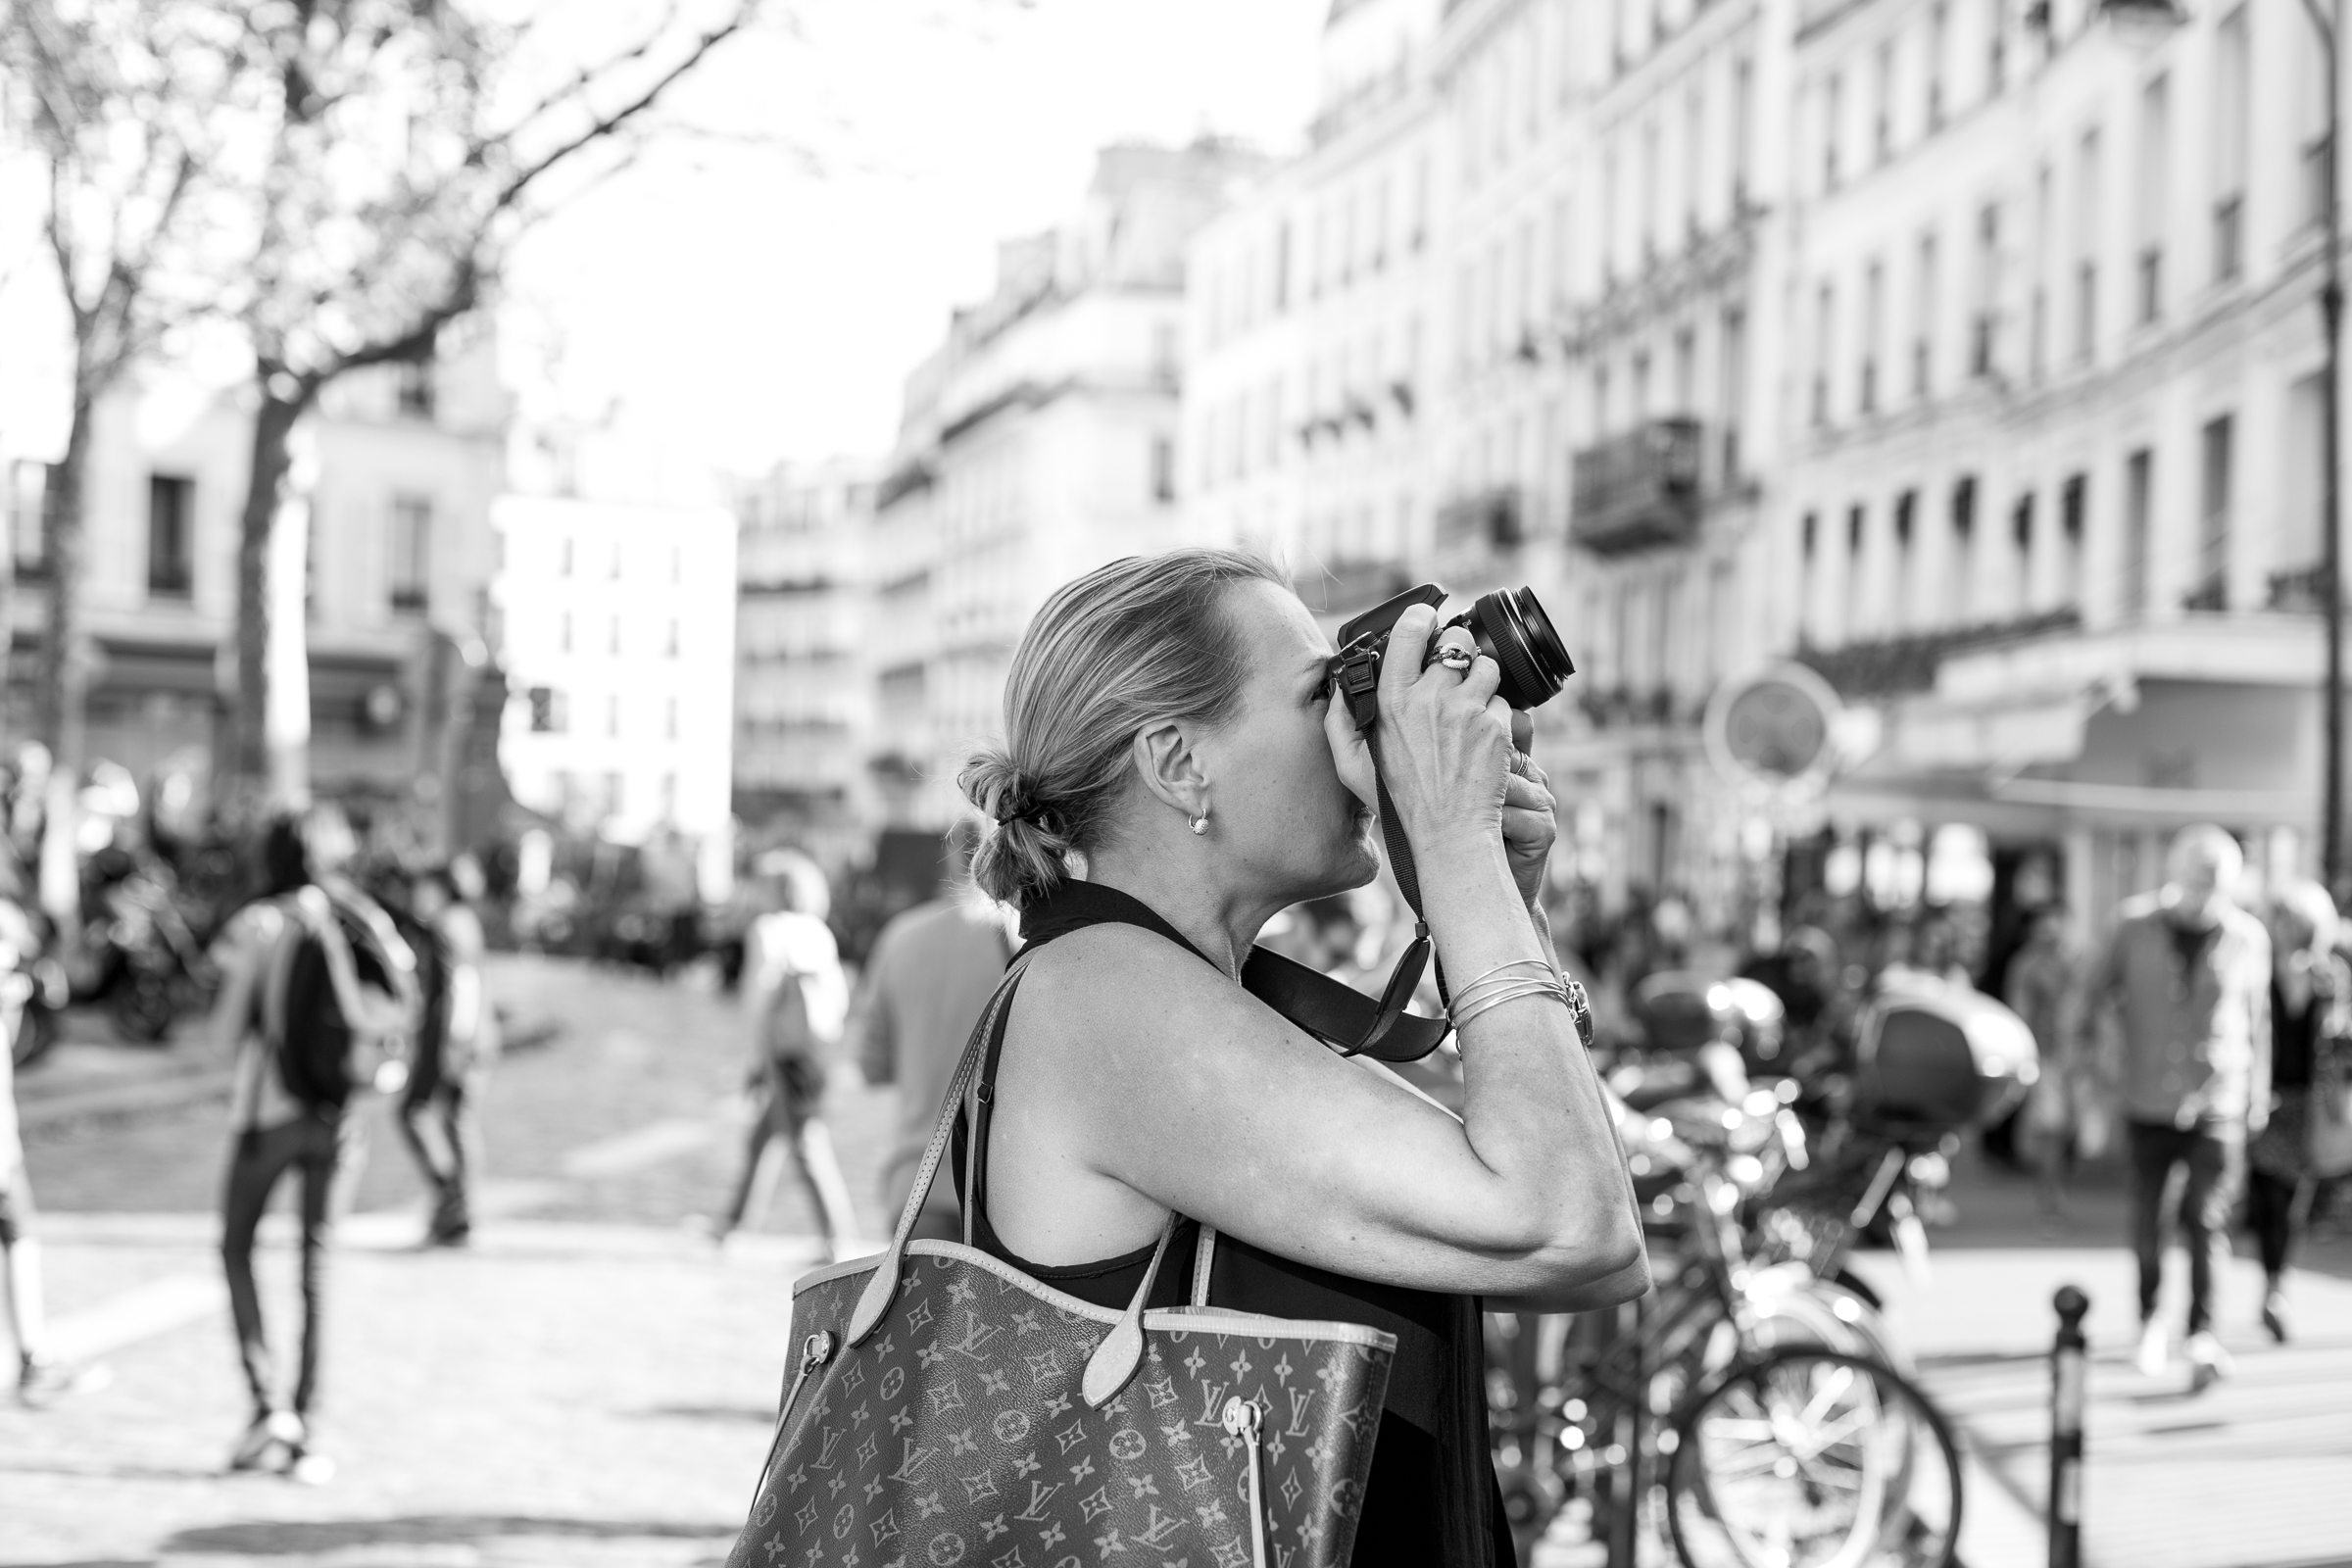 SNAPSHOTS OF MONTMARTRE - 17 OCT